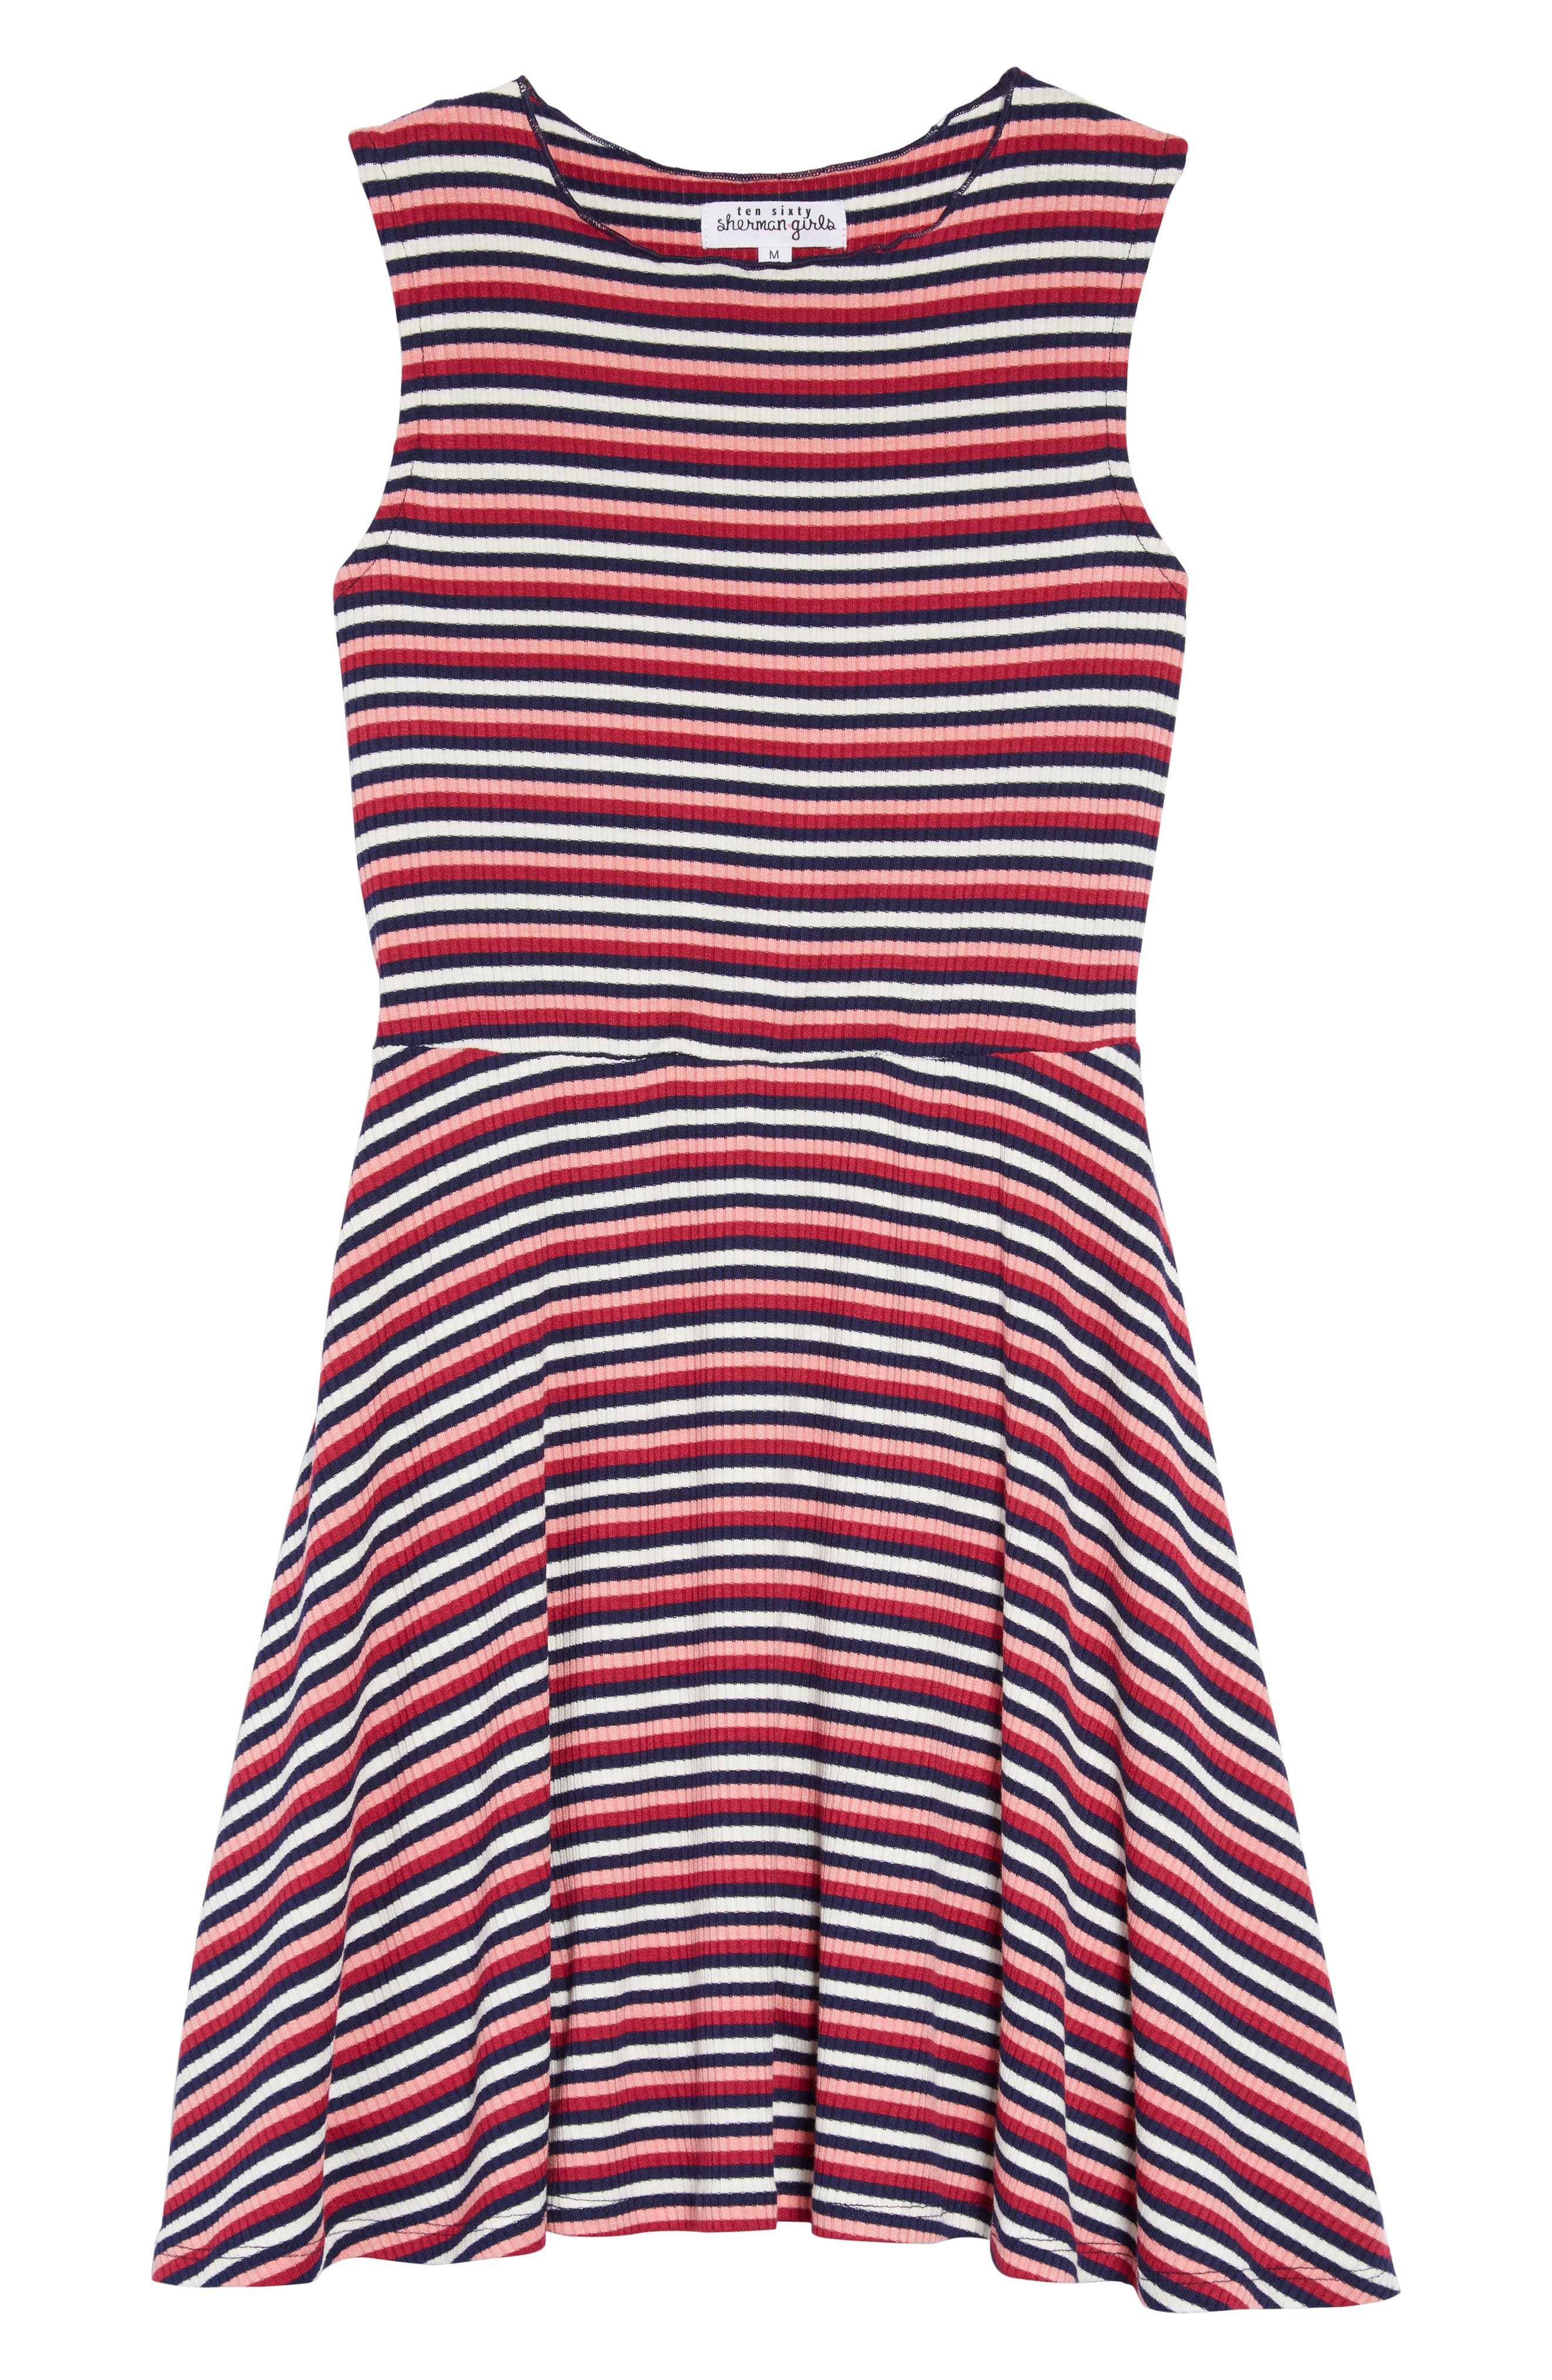 TEN SIXTY SHERMAN Stripe Dress, Main, color, WHITE RASPBERRY